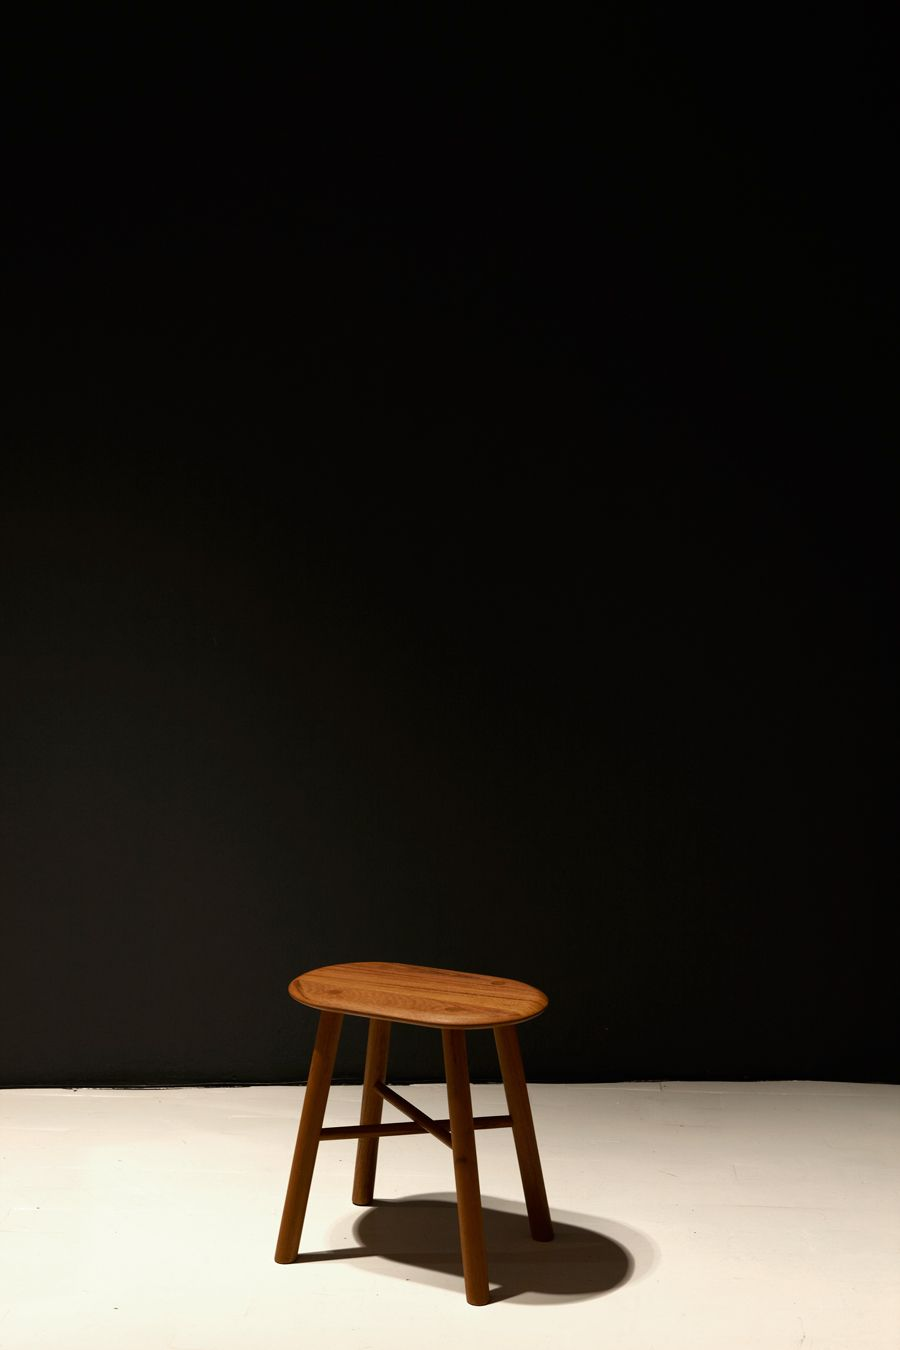 Biscuit Stool Black Walnut designed by Outofstock for Environment